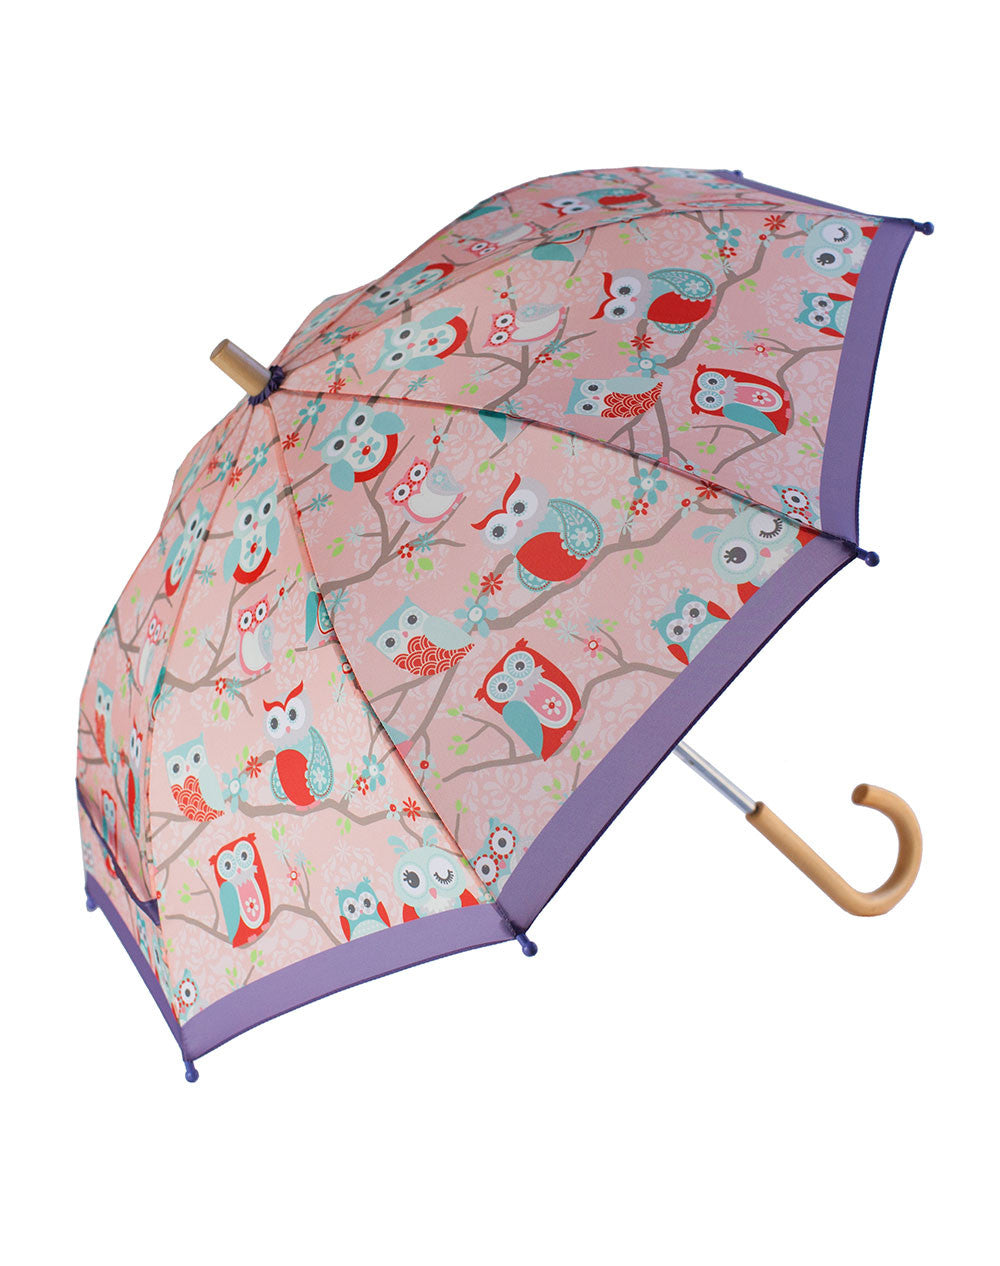 Children's Umbrella Perched Owls by Oakiwear